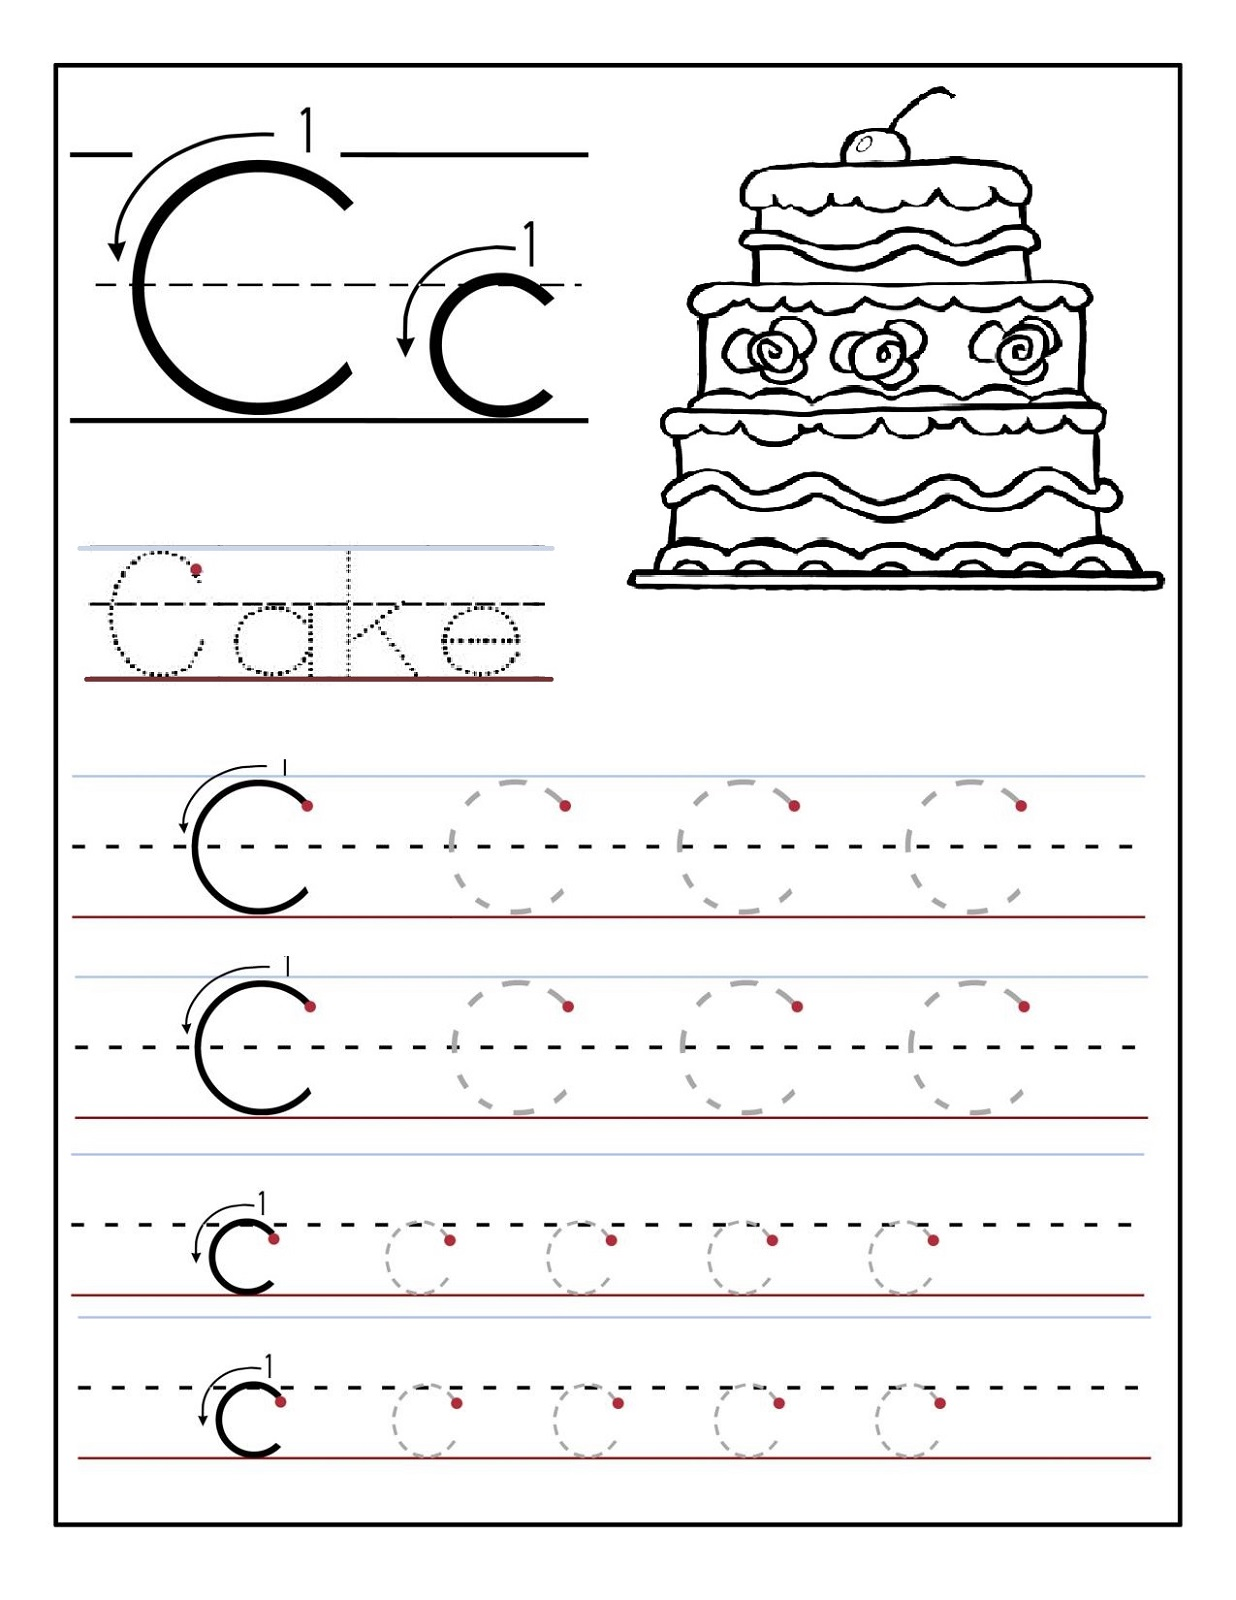 trace letter c for cake